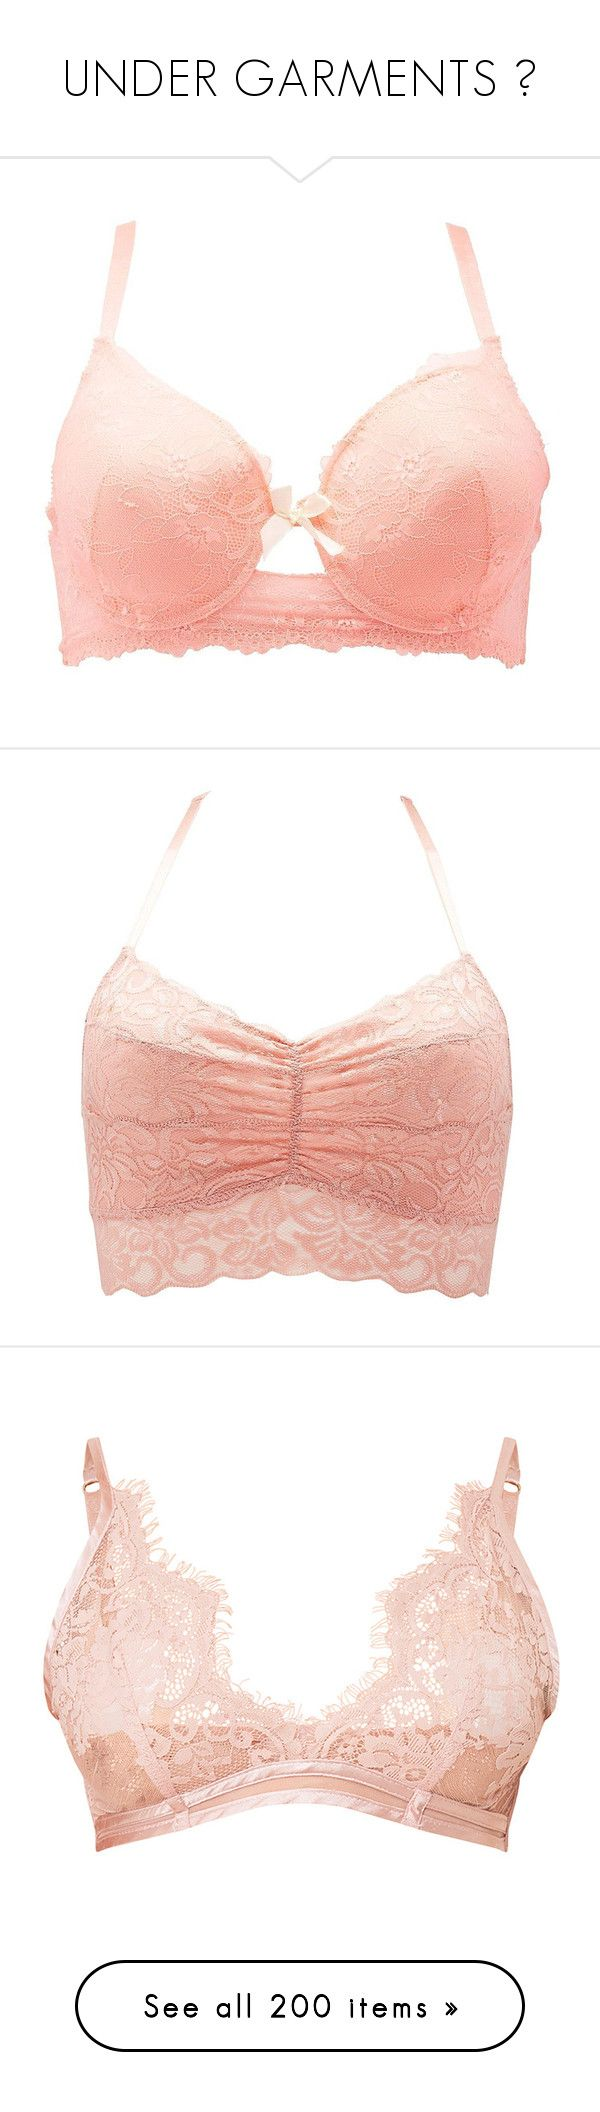 """UNDER GARMENTS "" by theonlydej ❤ liked on Polyvore featuring plus size women's fashion, plus size clothing, plus size intimates, plus size bras, bra, lingerie, peach, sheer underwire bra, women's plus size lingerie and sheer lace bra"